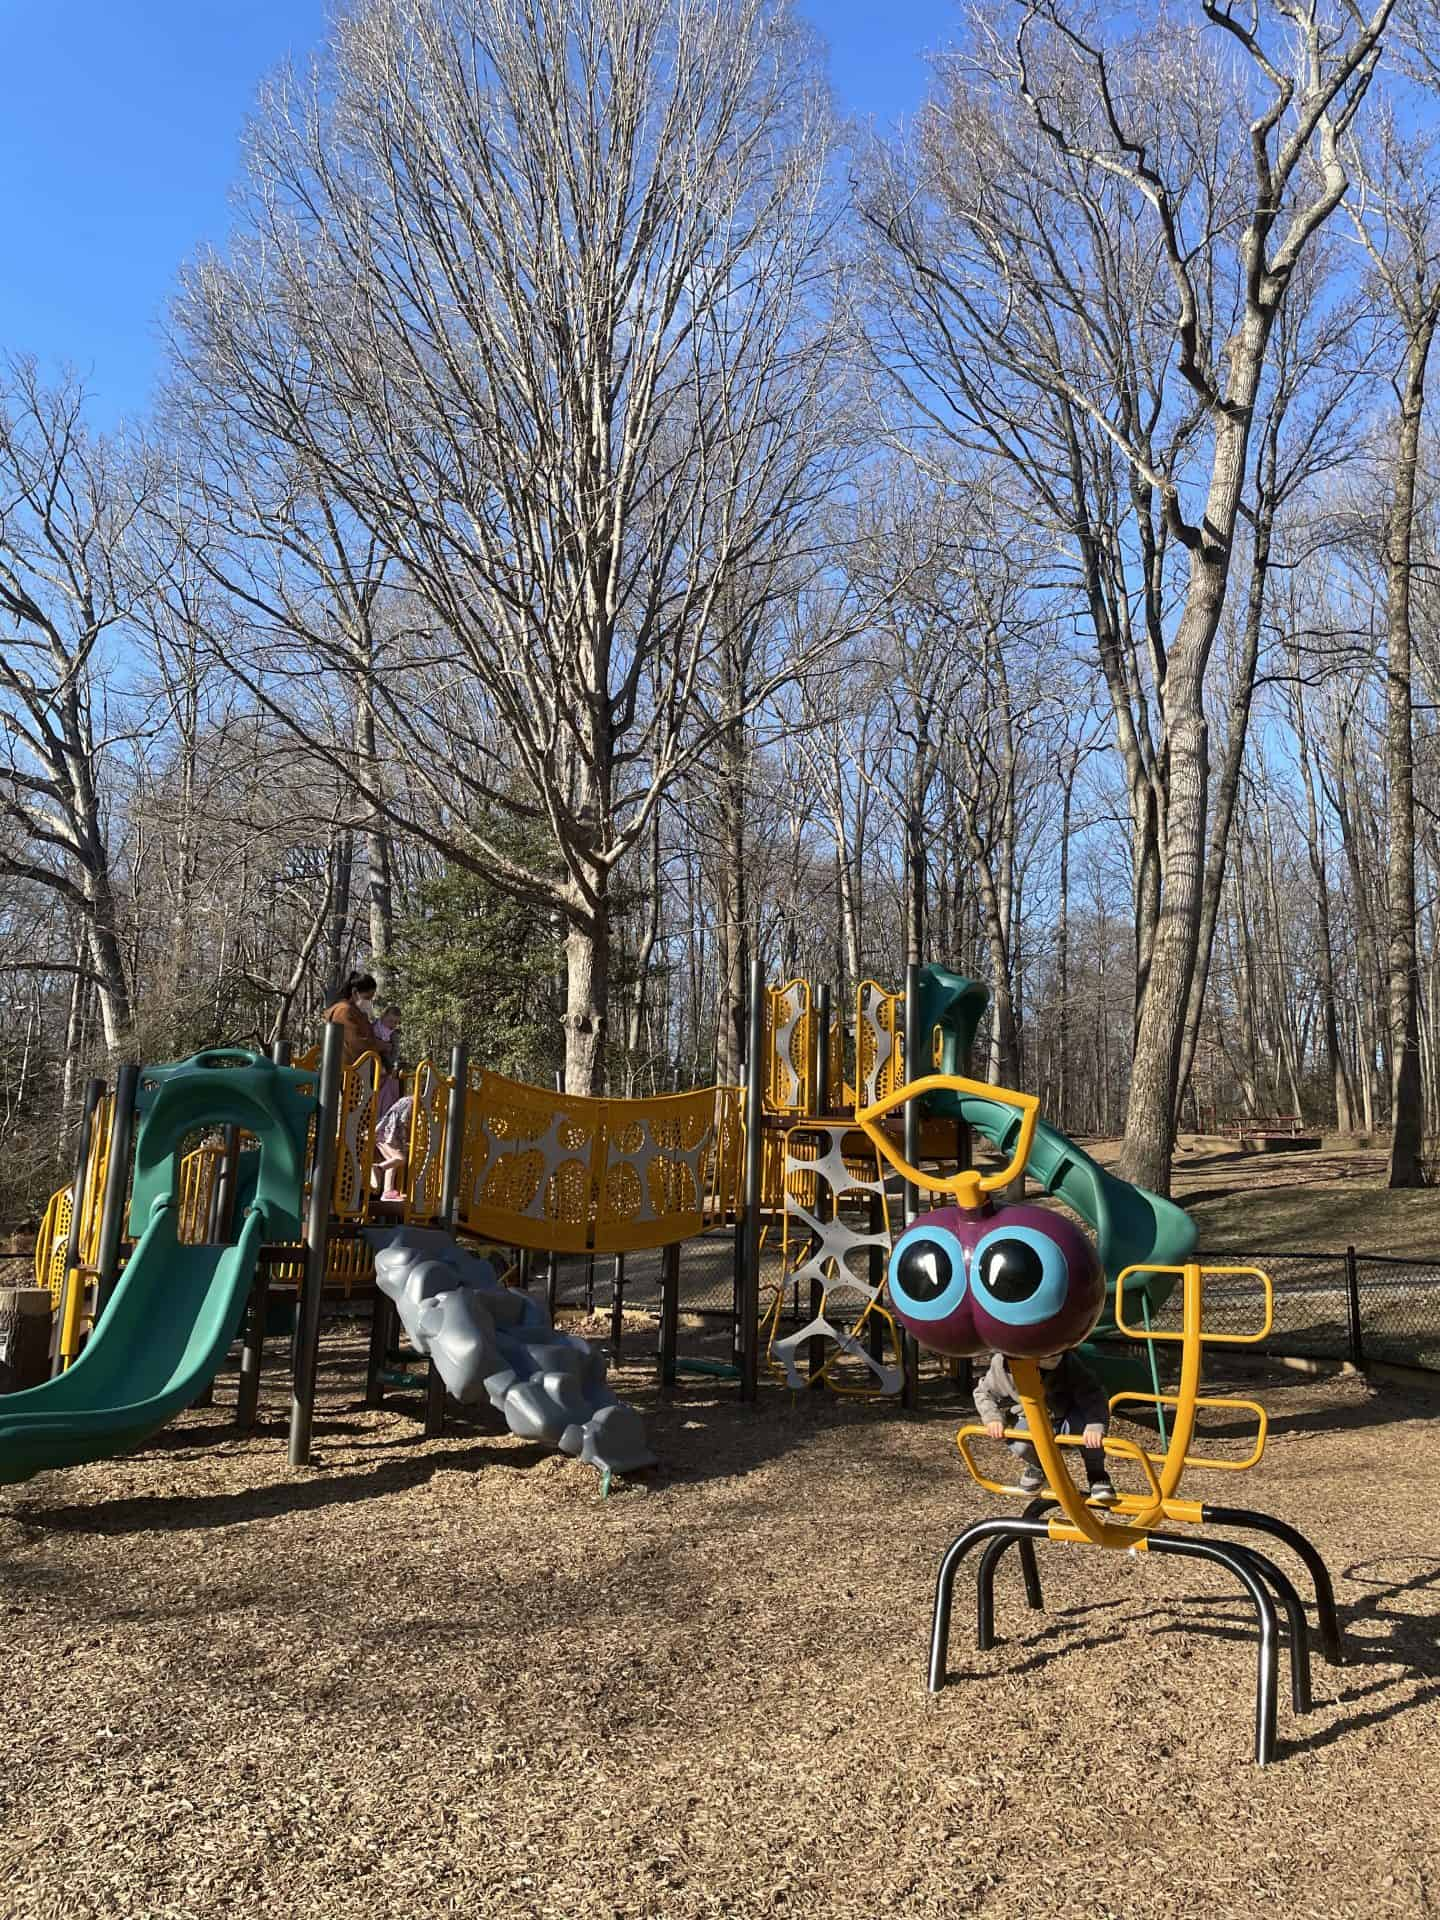 Butterfly Themed Playground in Annandale VA